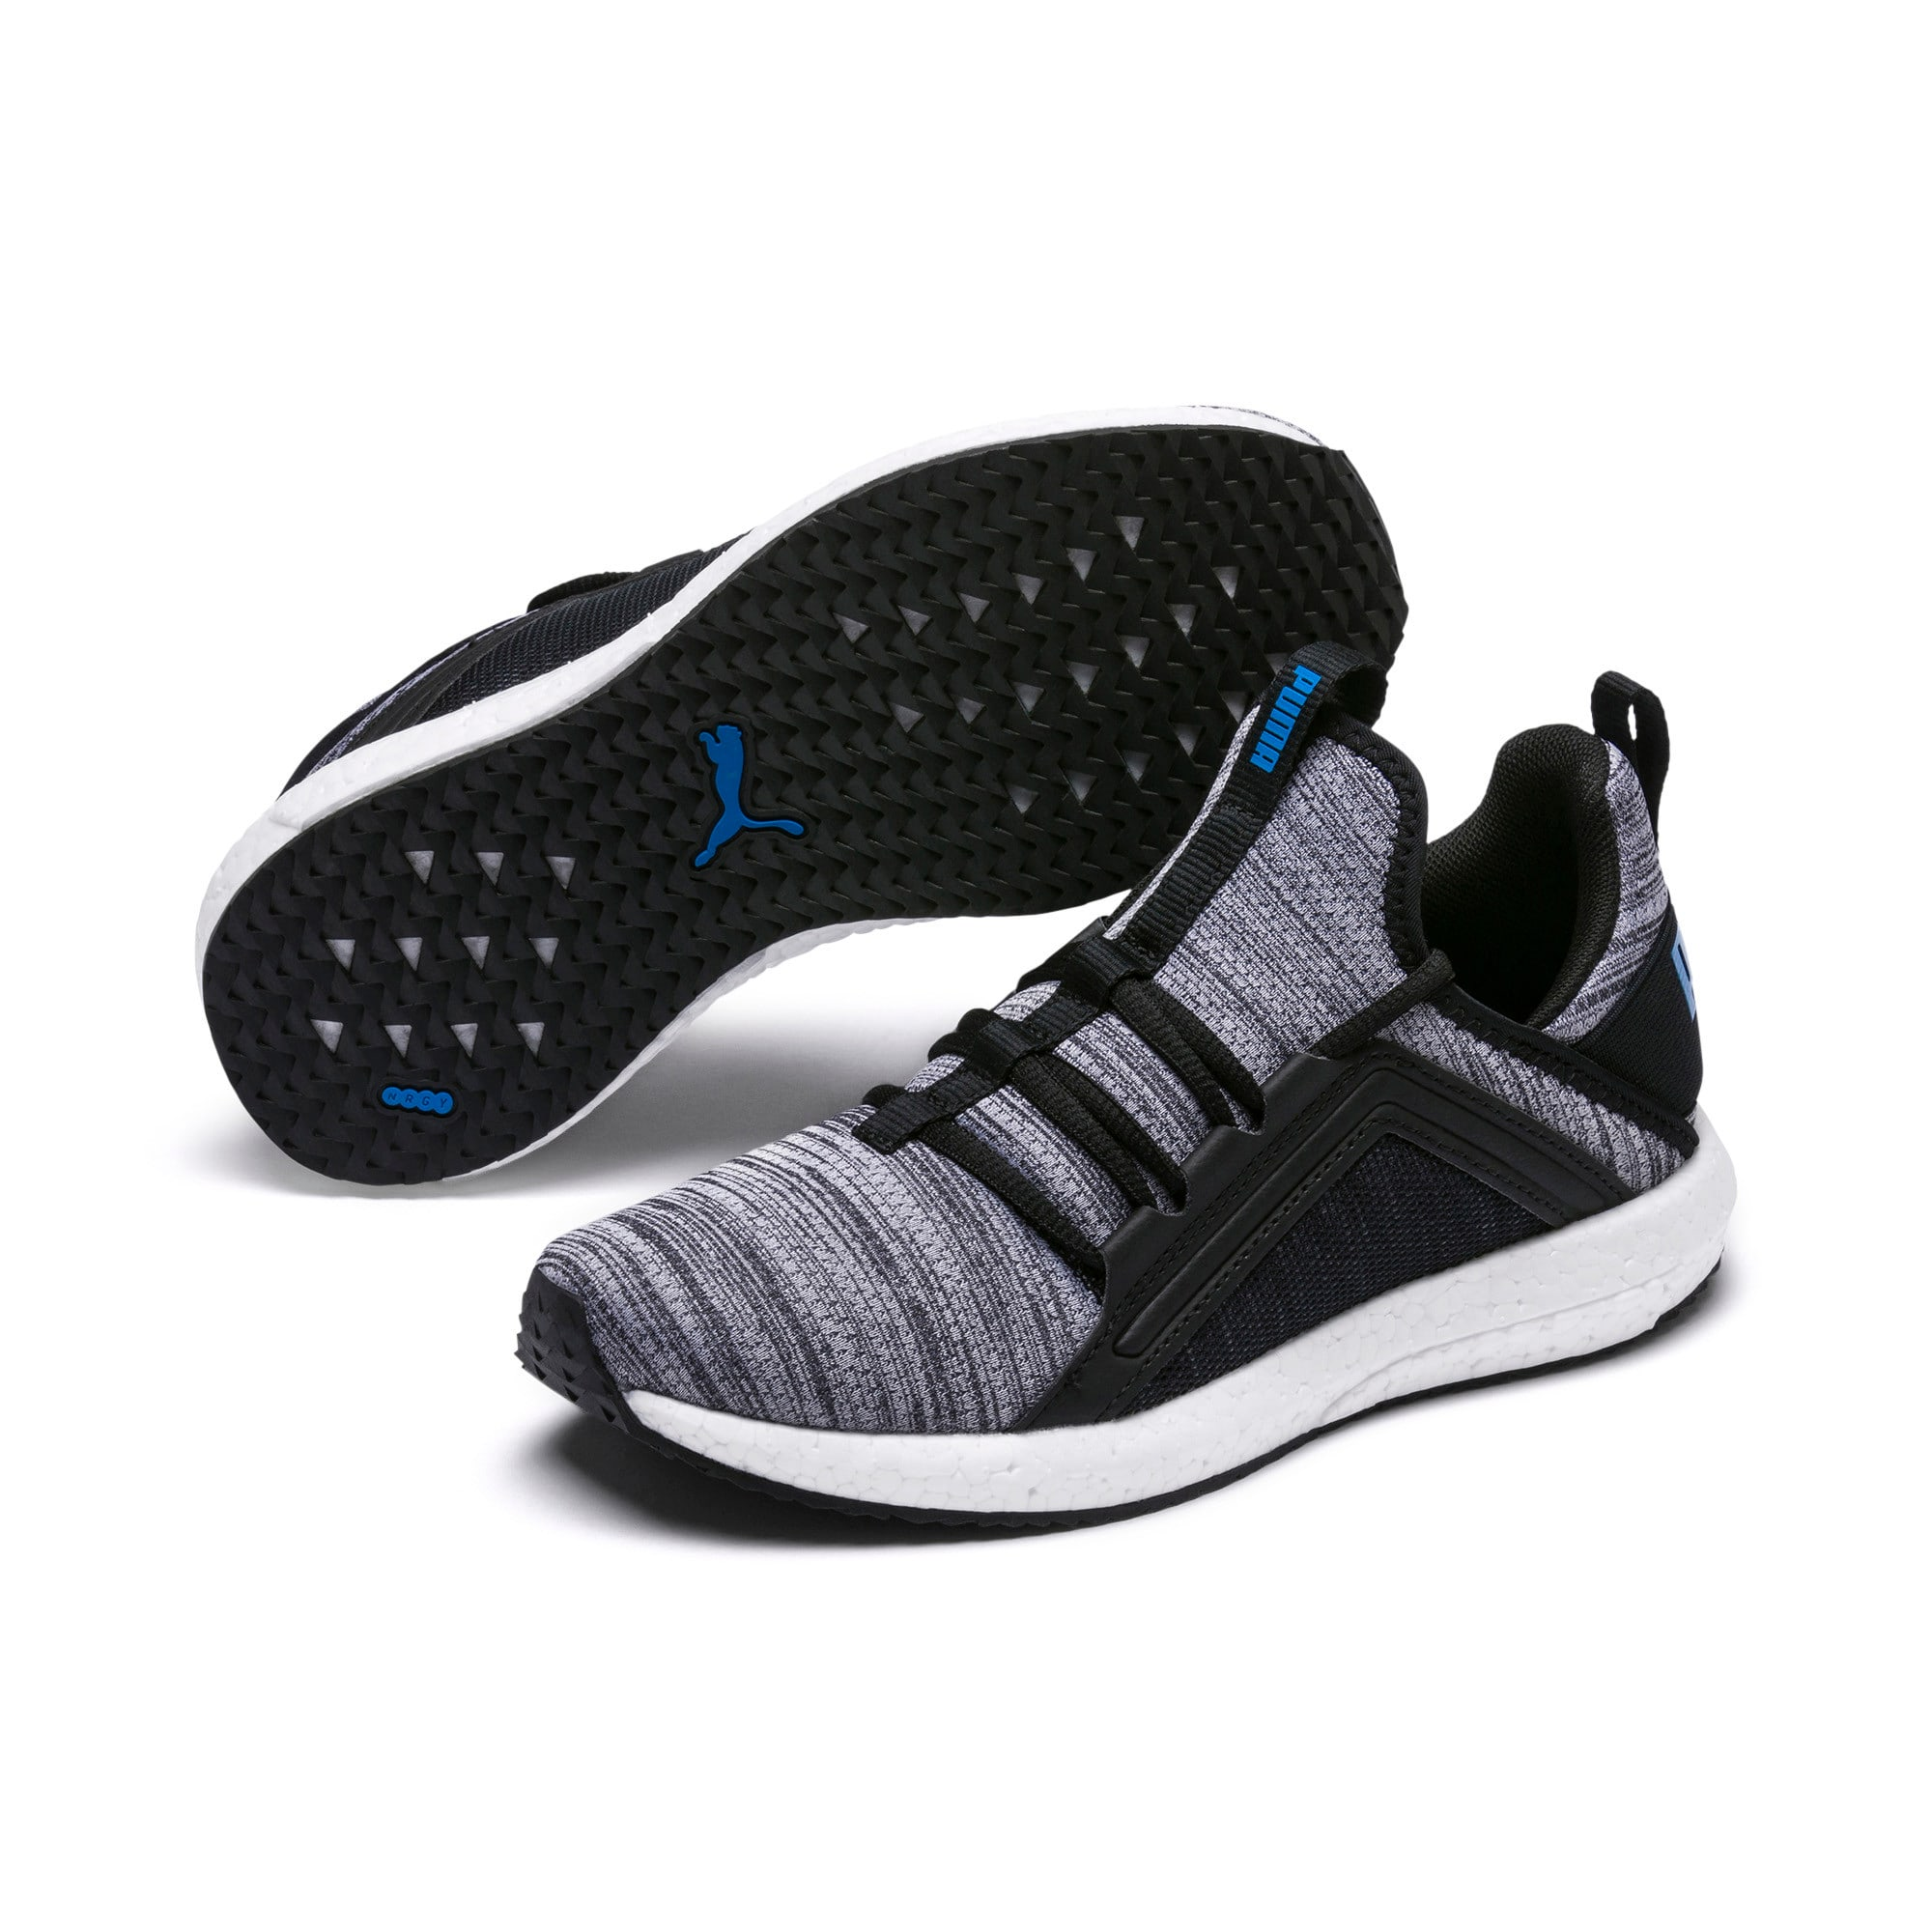 Thumbnail 2 of Mega Energy Heather Knit Kids' Running Shoes, Black-White-Indigo Bunting, medium